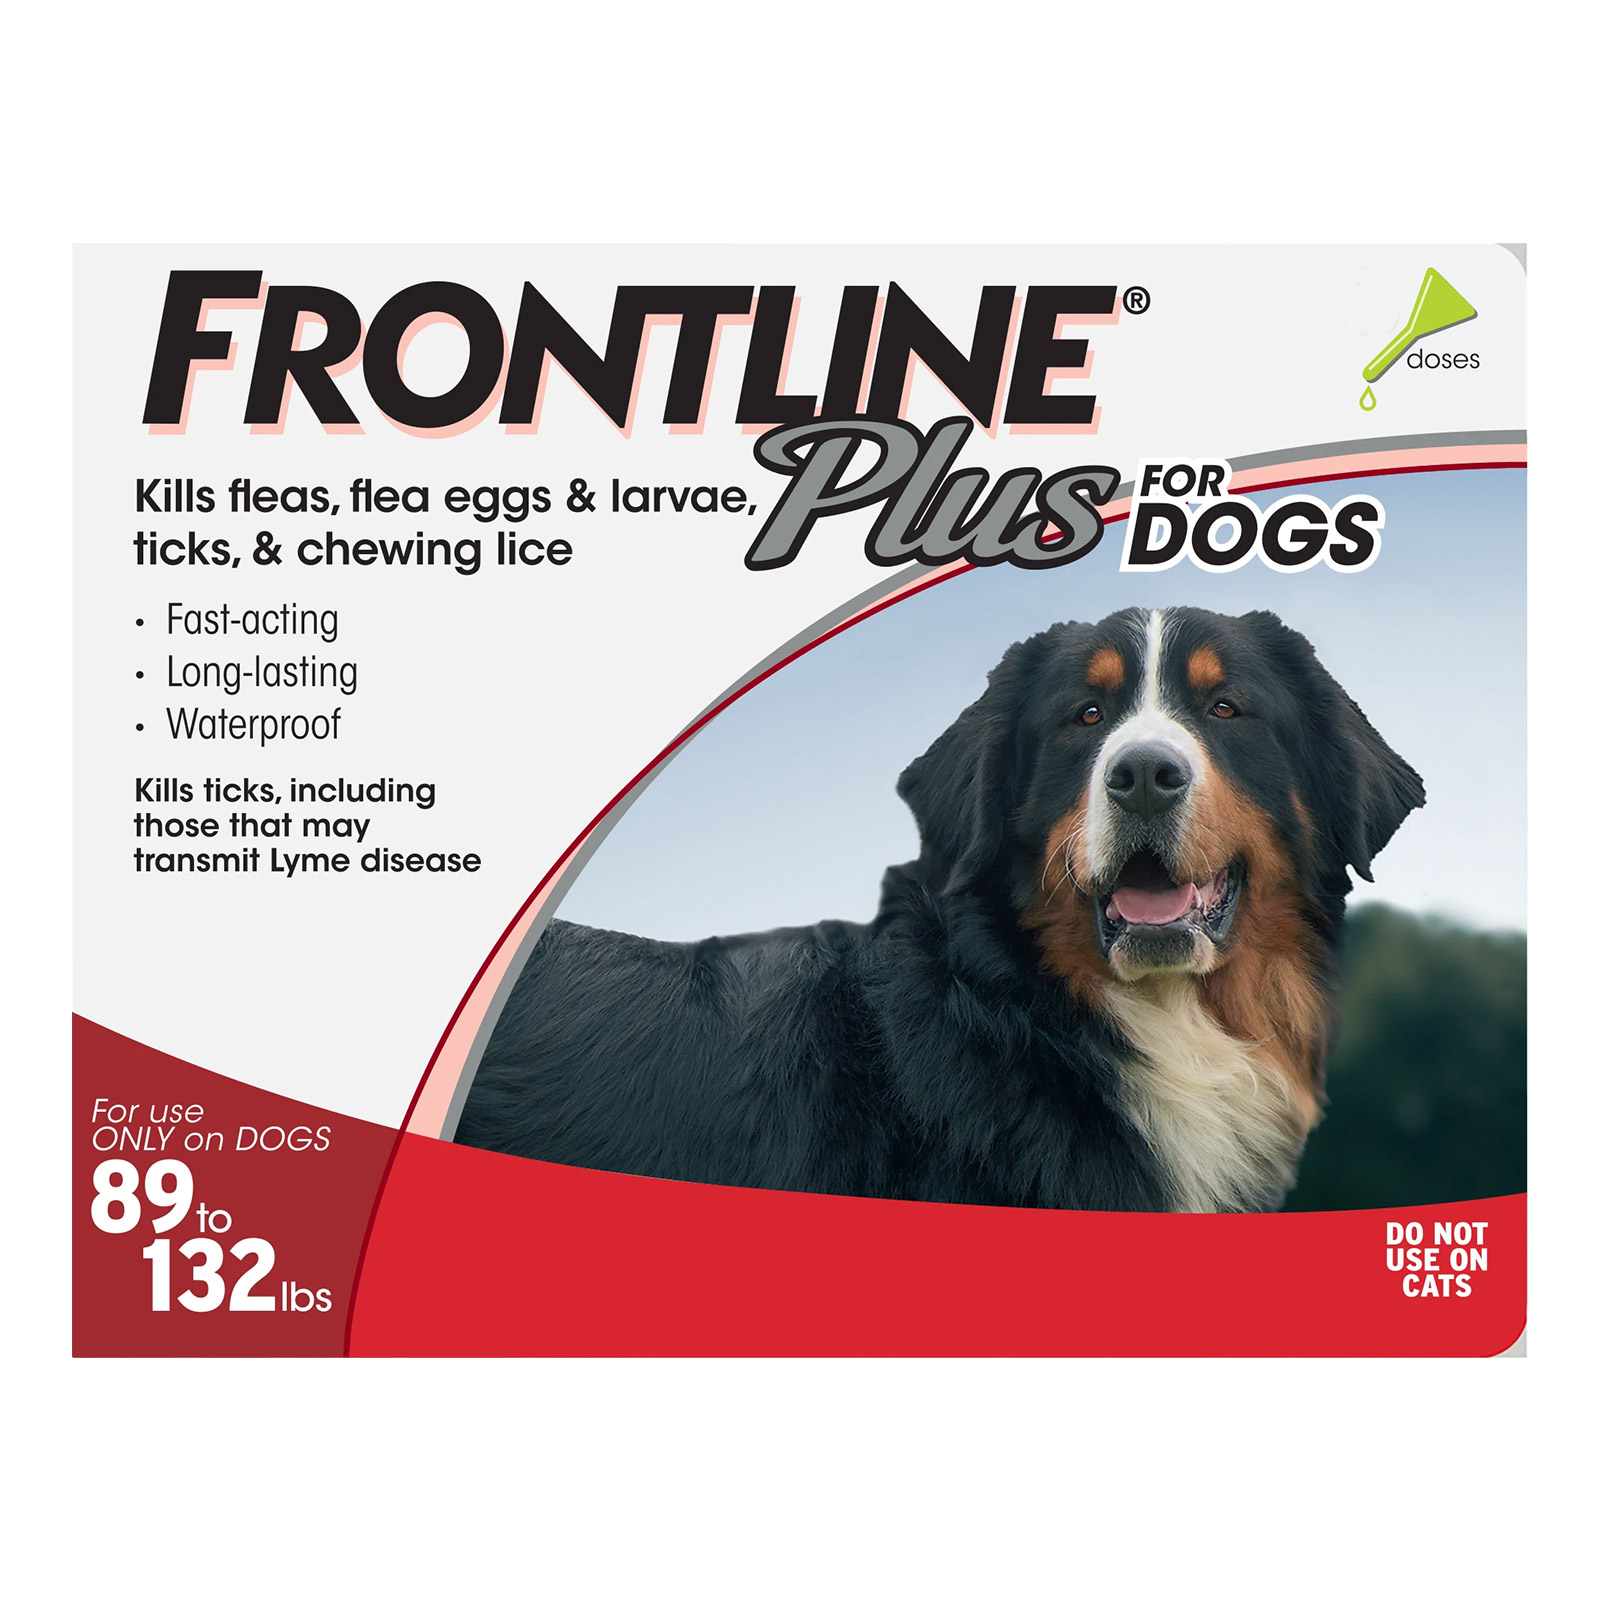 Frontline Plus for Extra Large Dogs over 89 lbs (Red) 6 MONTHS